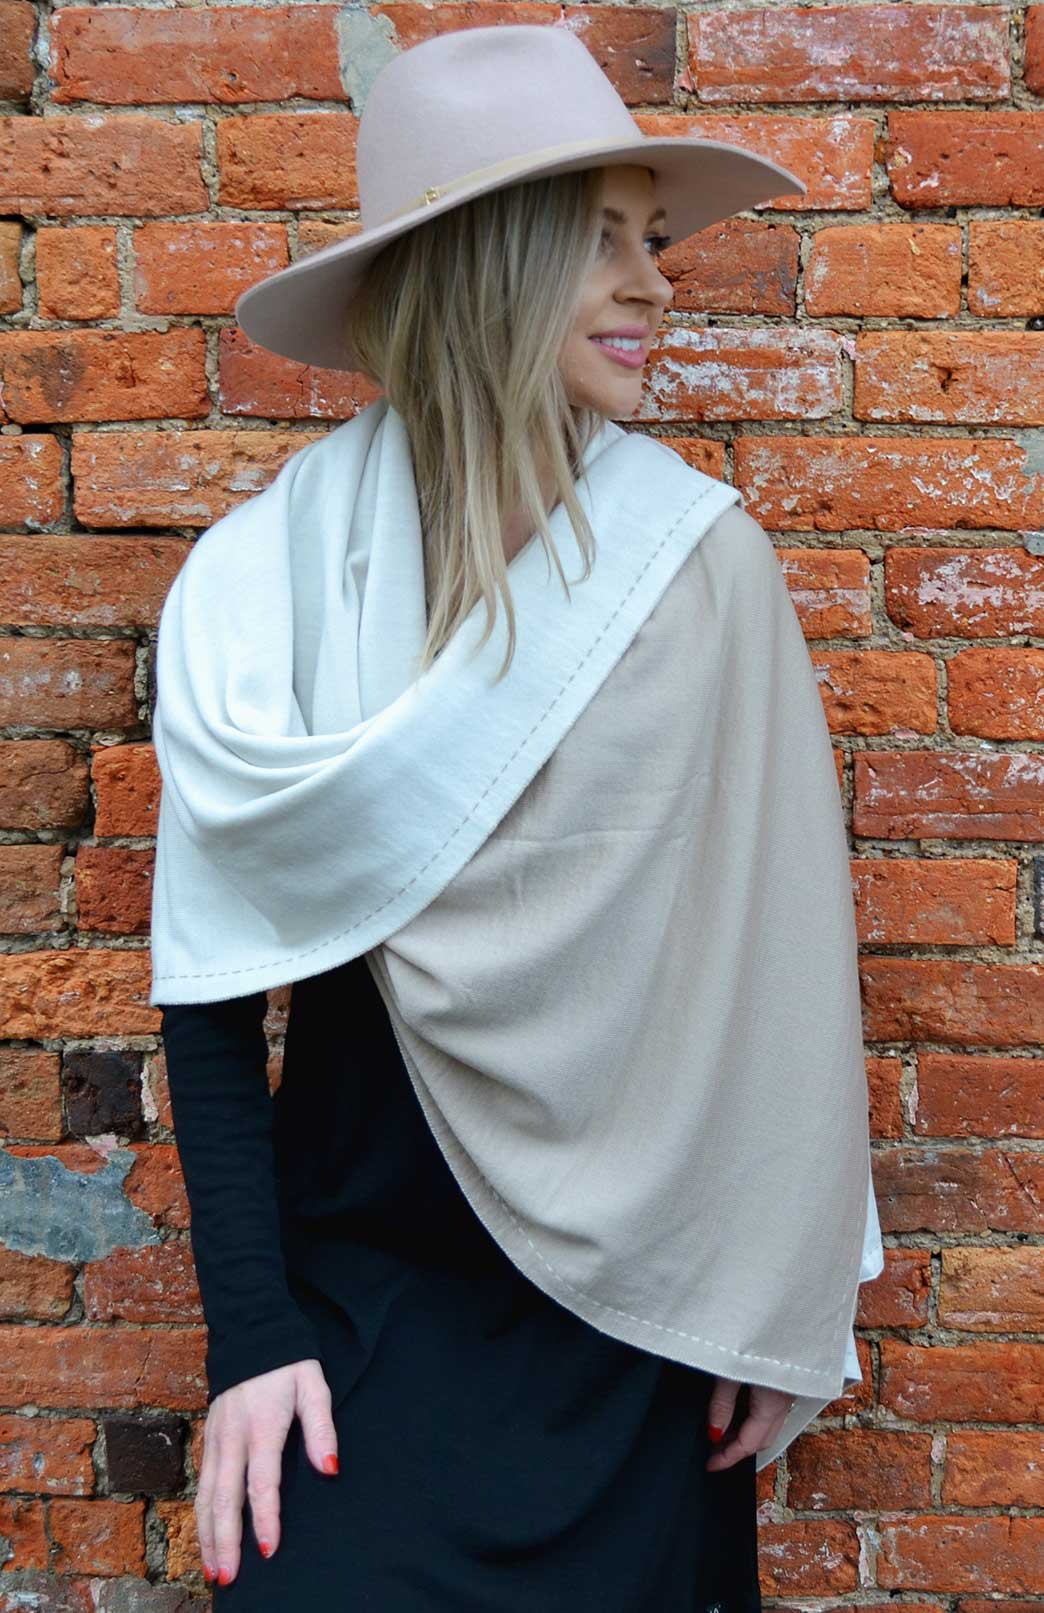 Reversible Wrap - Women's Natural Cream and Oatmeal Superfine Merino Wool Reversible Wrap and Knee Blanket - Smitten Merino Tasmania Australia